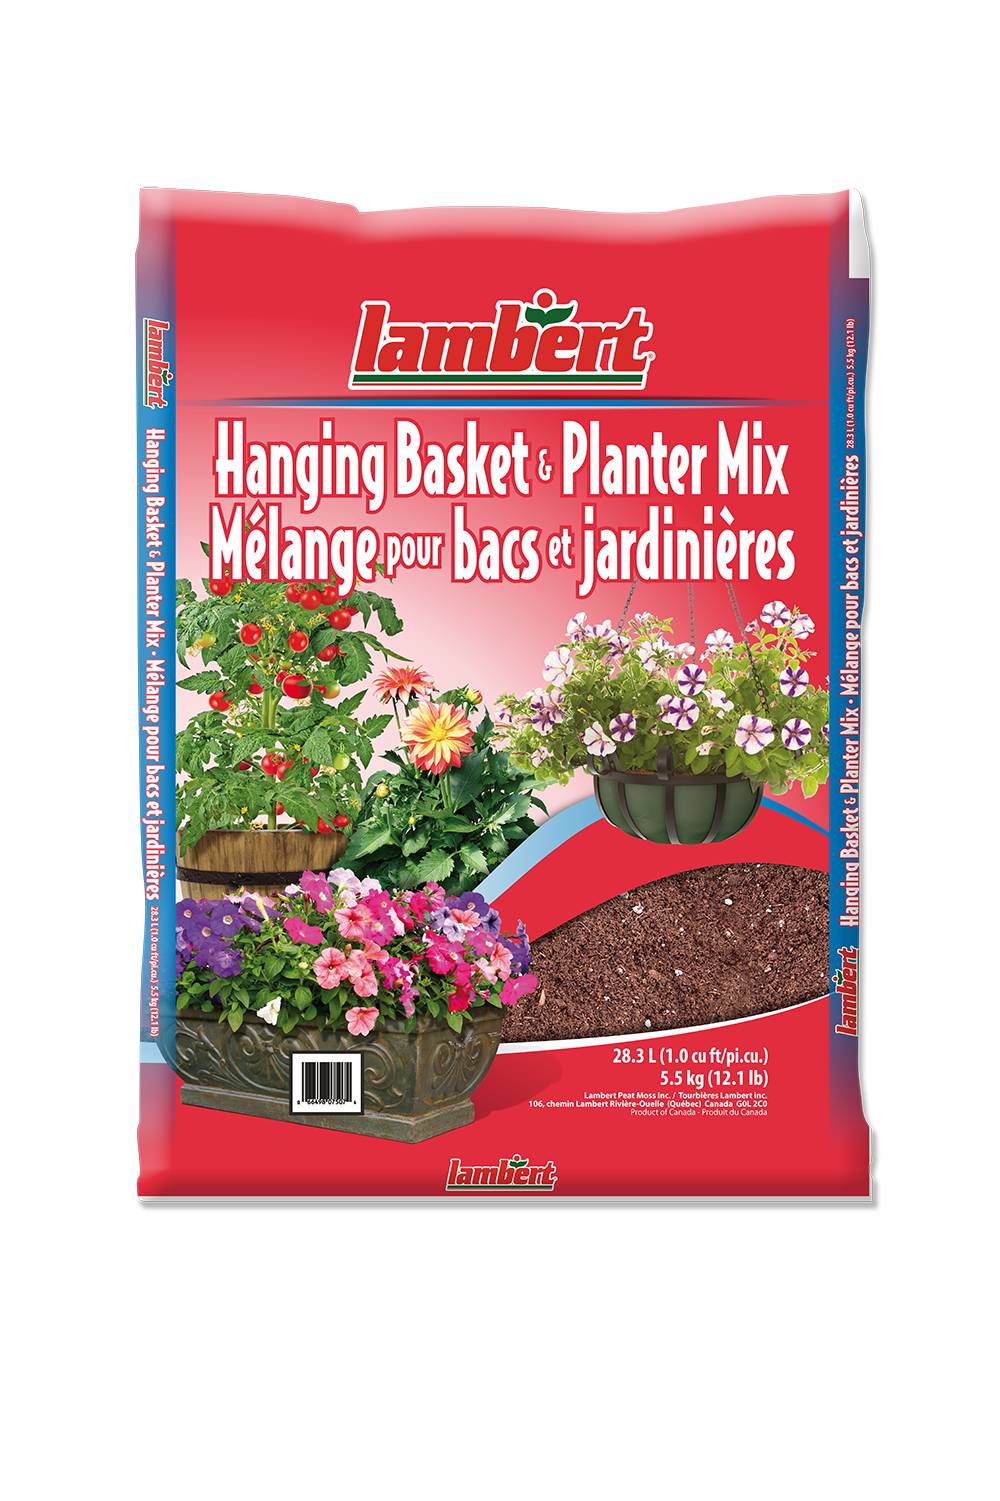 Lambert Hanging Basket and Planter Mix - 28.3L